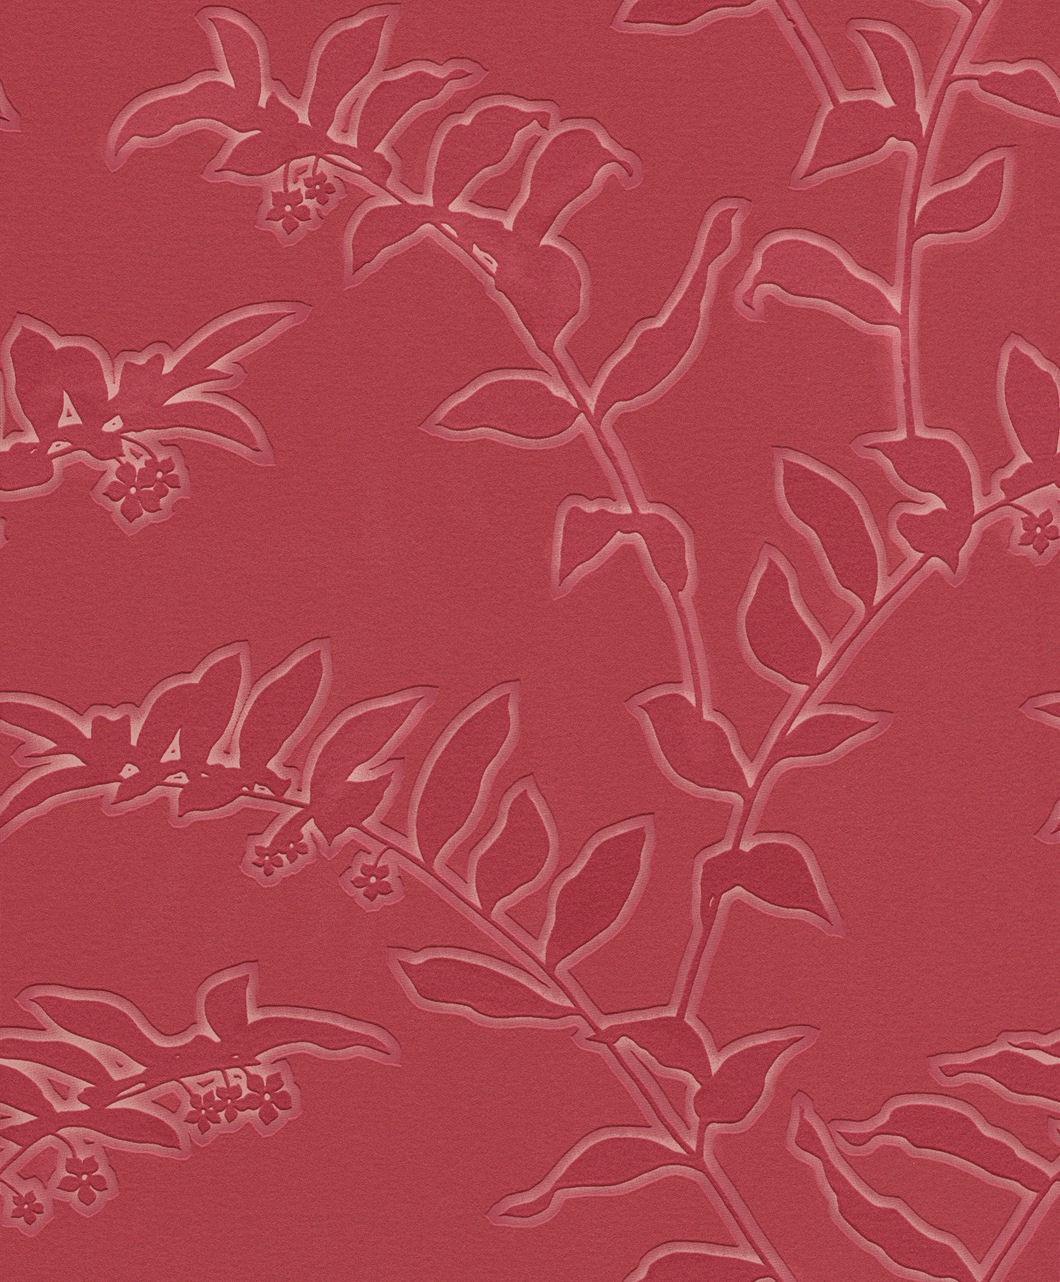 Personal affairs rasch 431063 tapete floral rot for Tapete floral